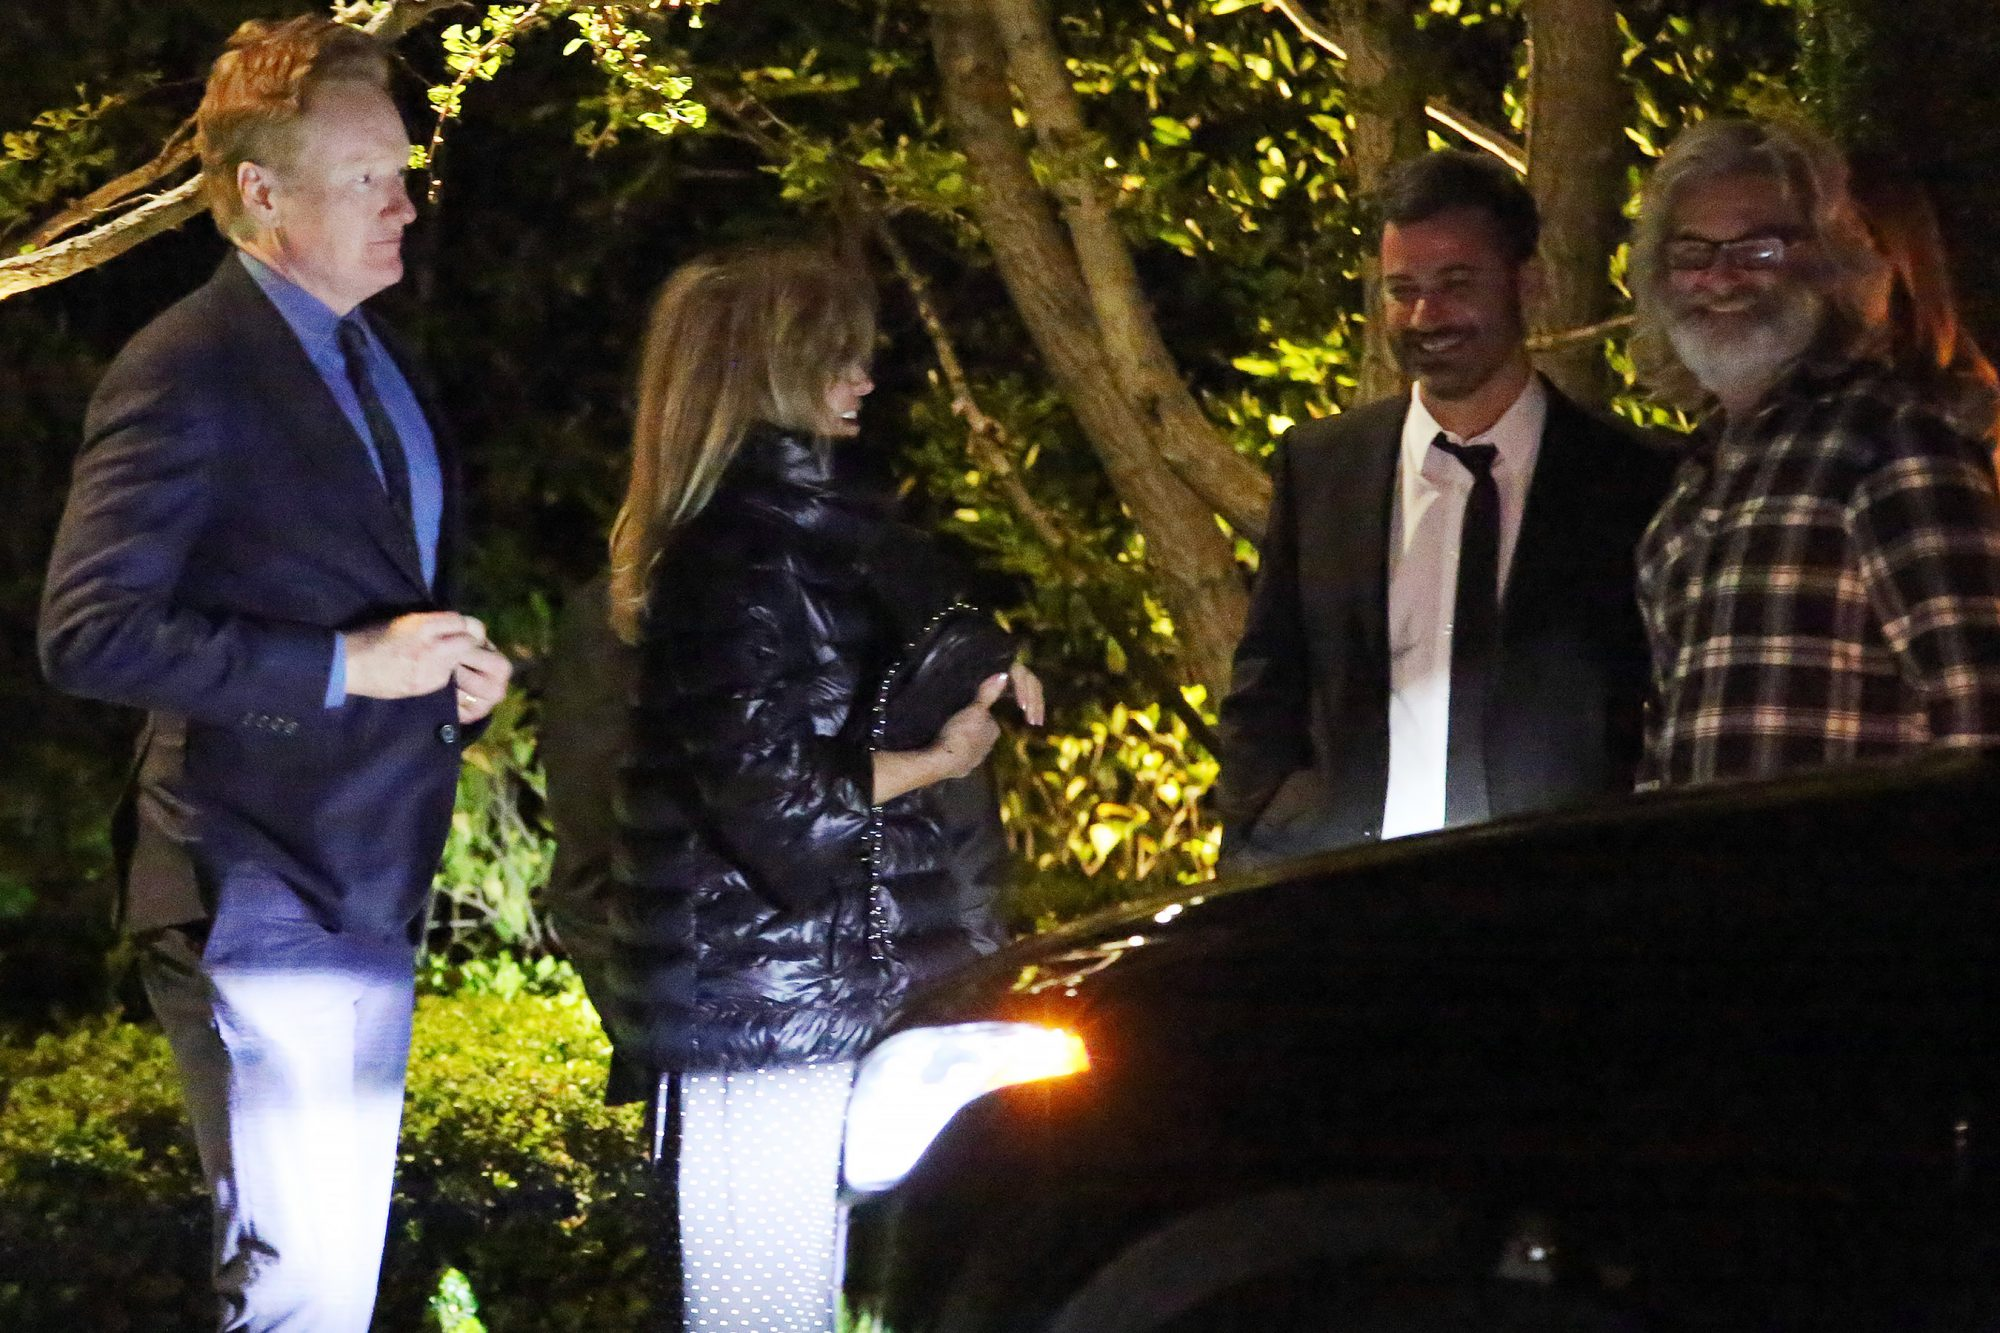 EXCLUSIVE: Kurt Russell, Goldie Hawn, Martin Short, Jimmy Kimmel And Conan O'Brien are seen wanting outside for their cars after attending Tom Hanks and Rita Wilson's 30th Anniversary